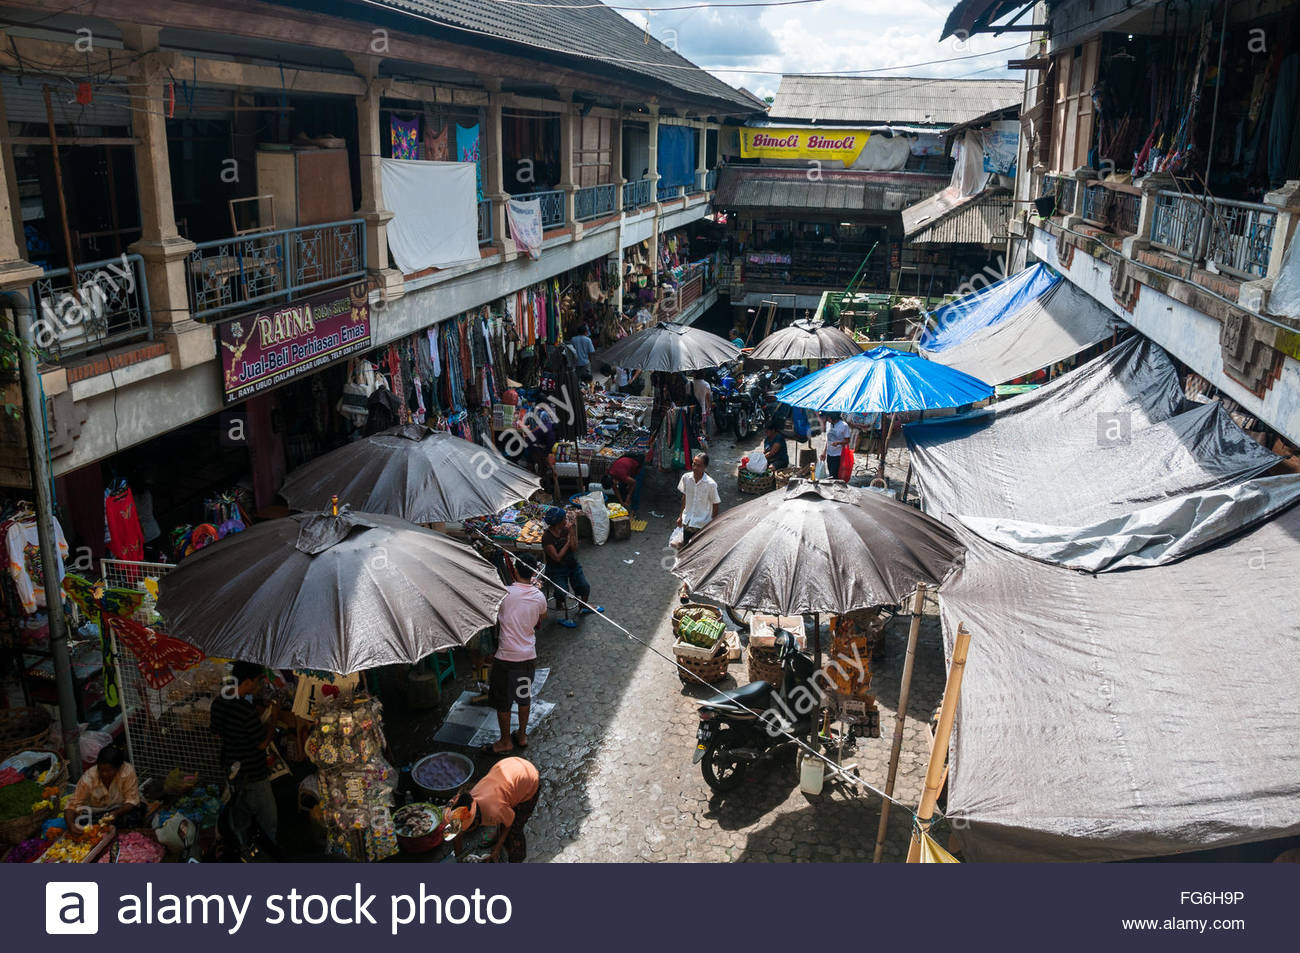 A view over the Ubud Market and its stalls, Bali, Indonesia. - Stock Image